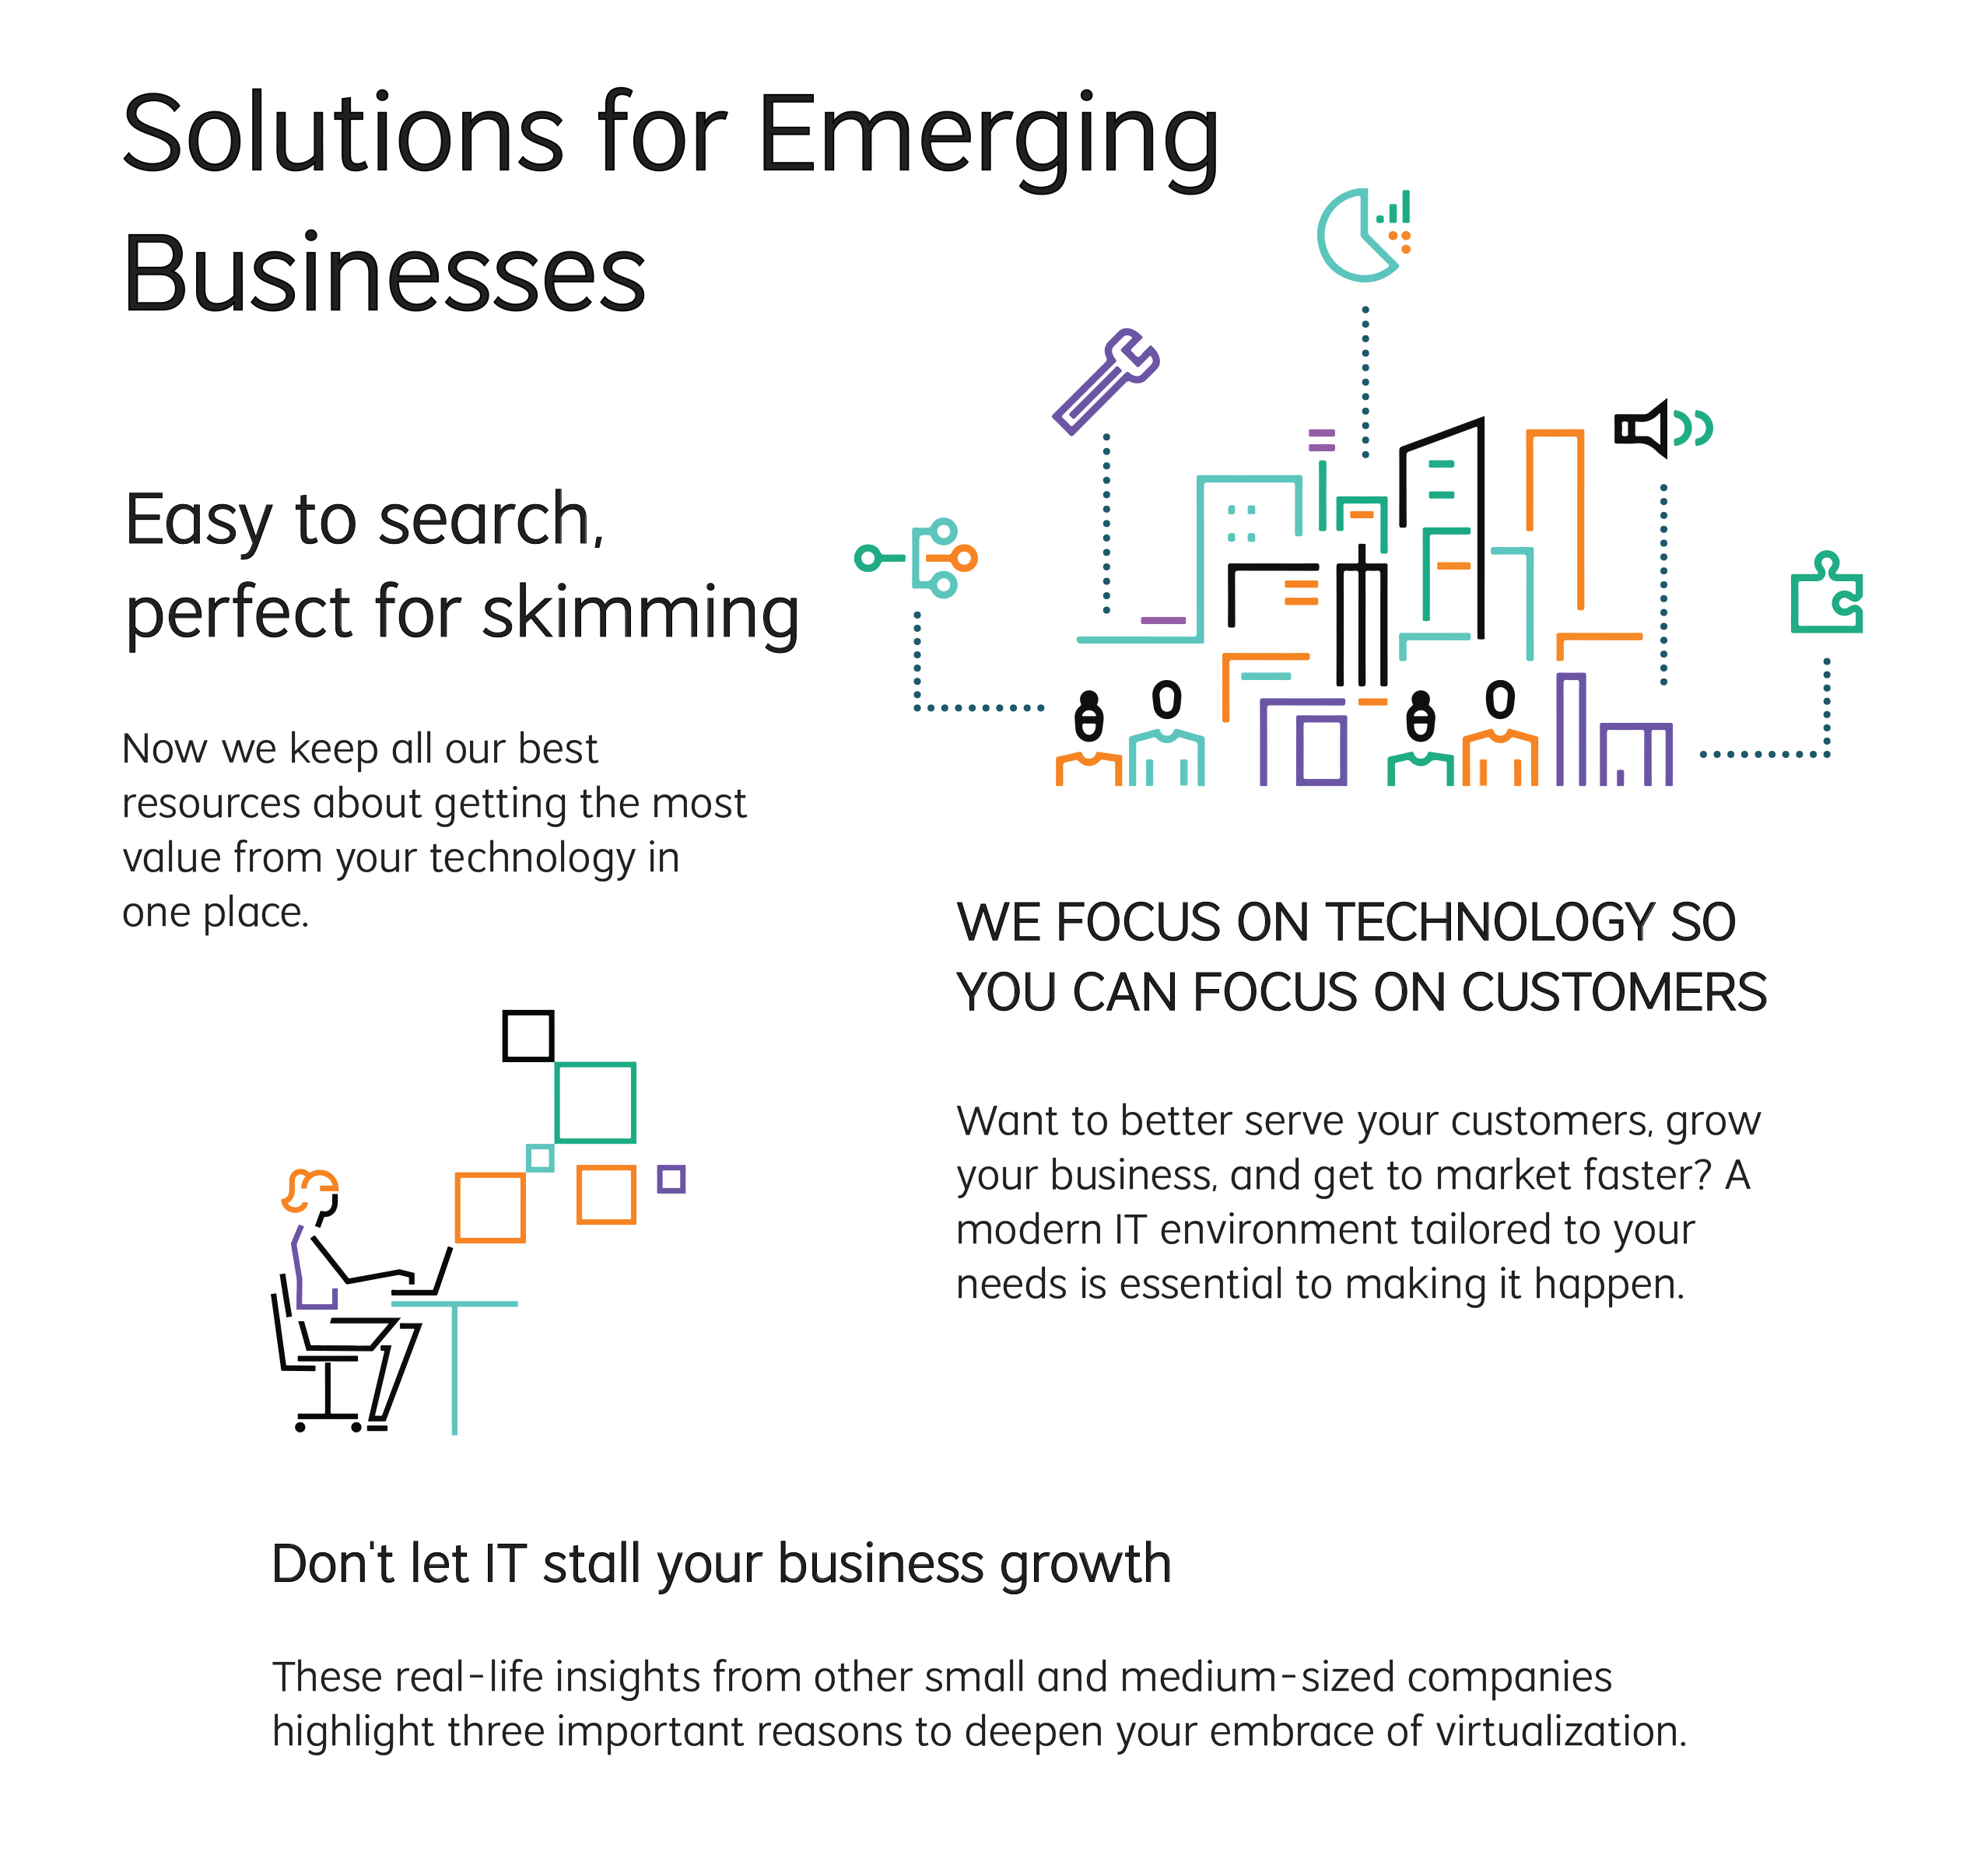 Solutions for Emerging Businesses